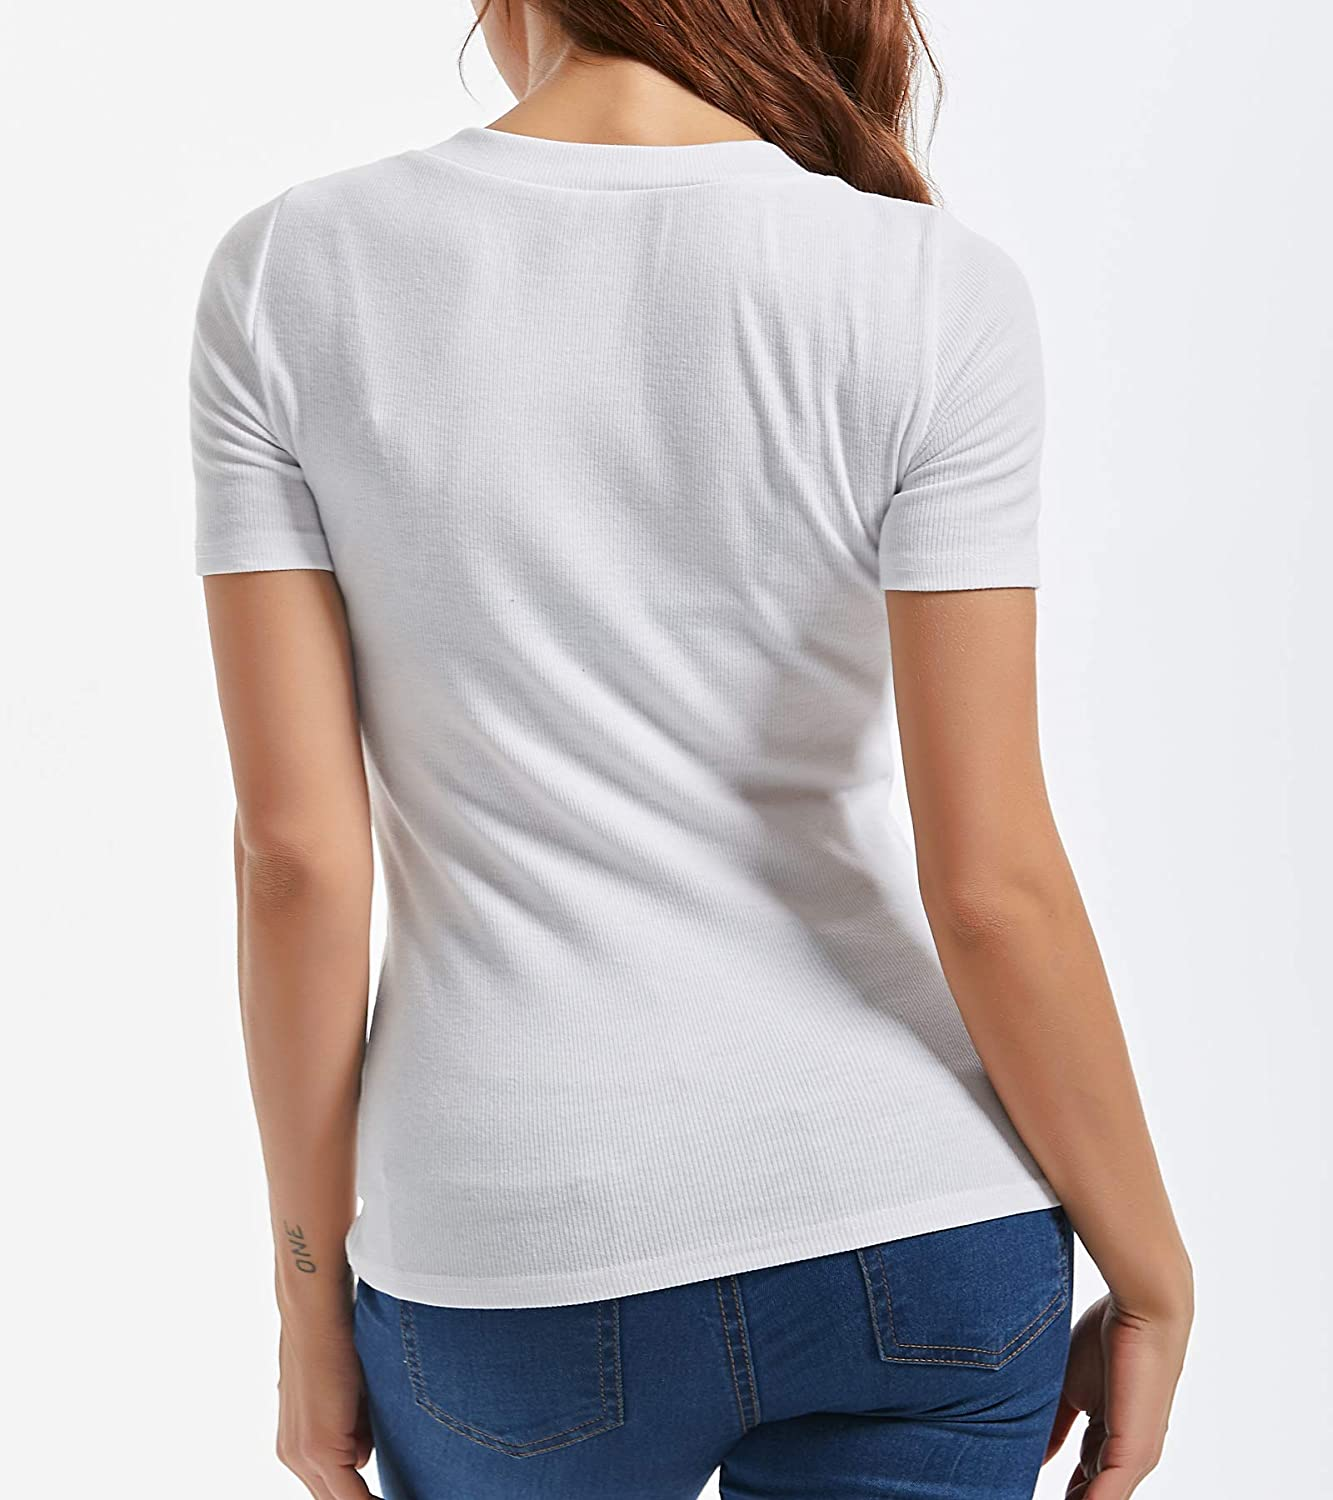 AOYOG Womens Button V Neck Tee Petite Short Sleeve Blouse Tops T Shirts